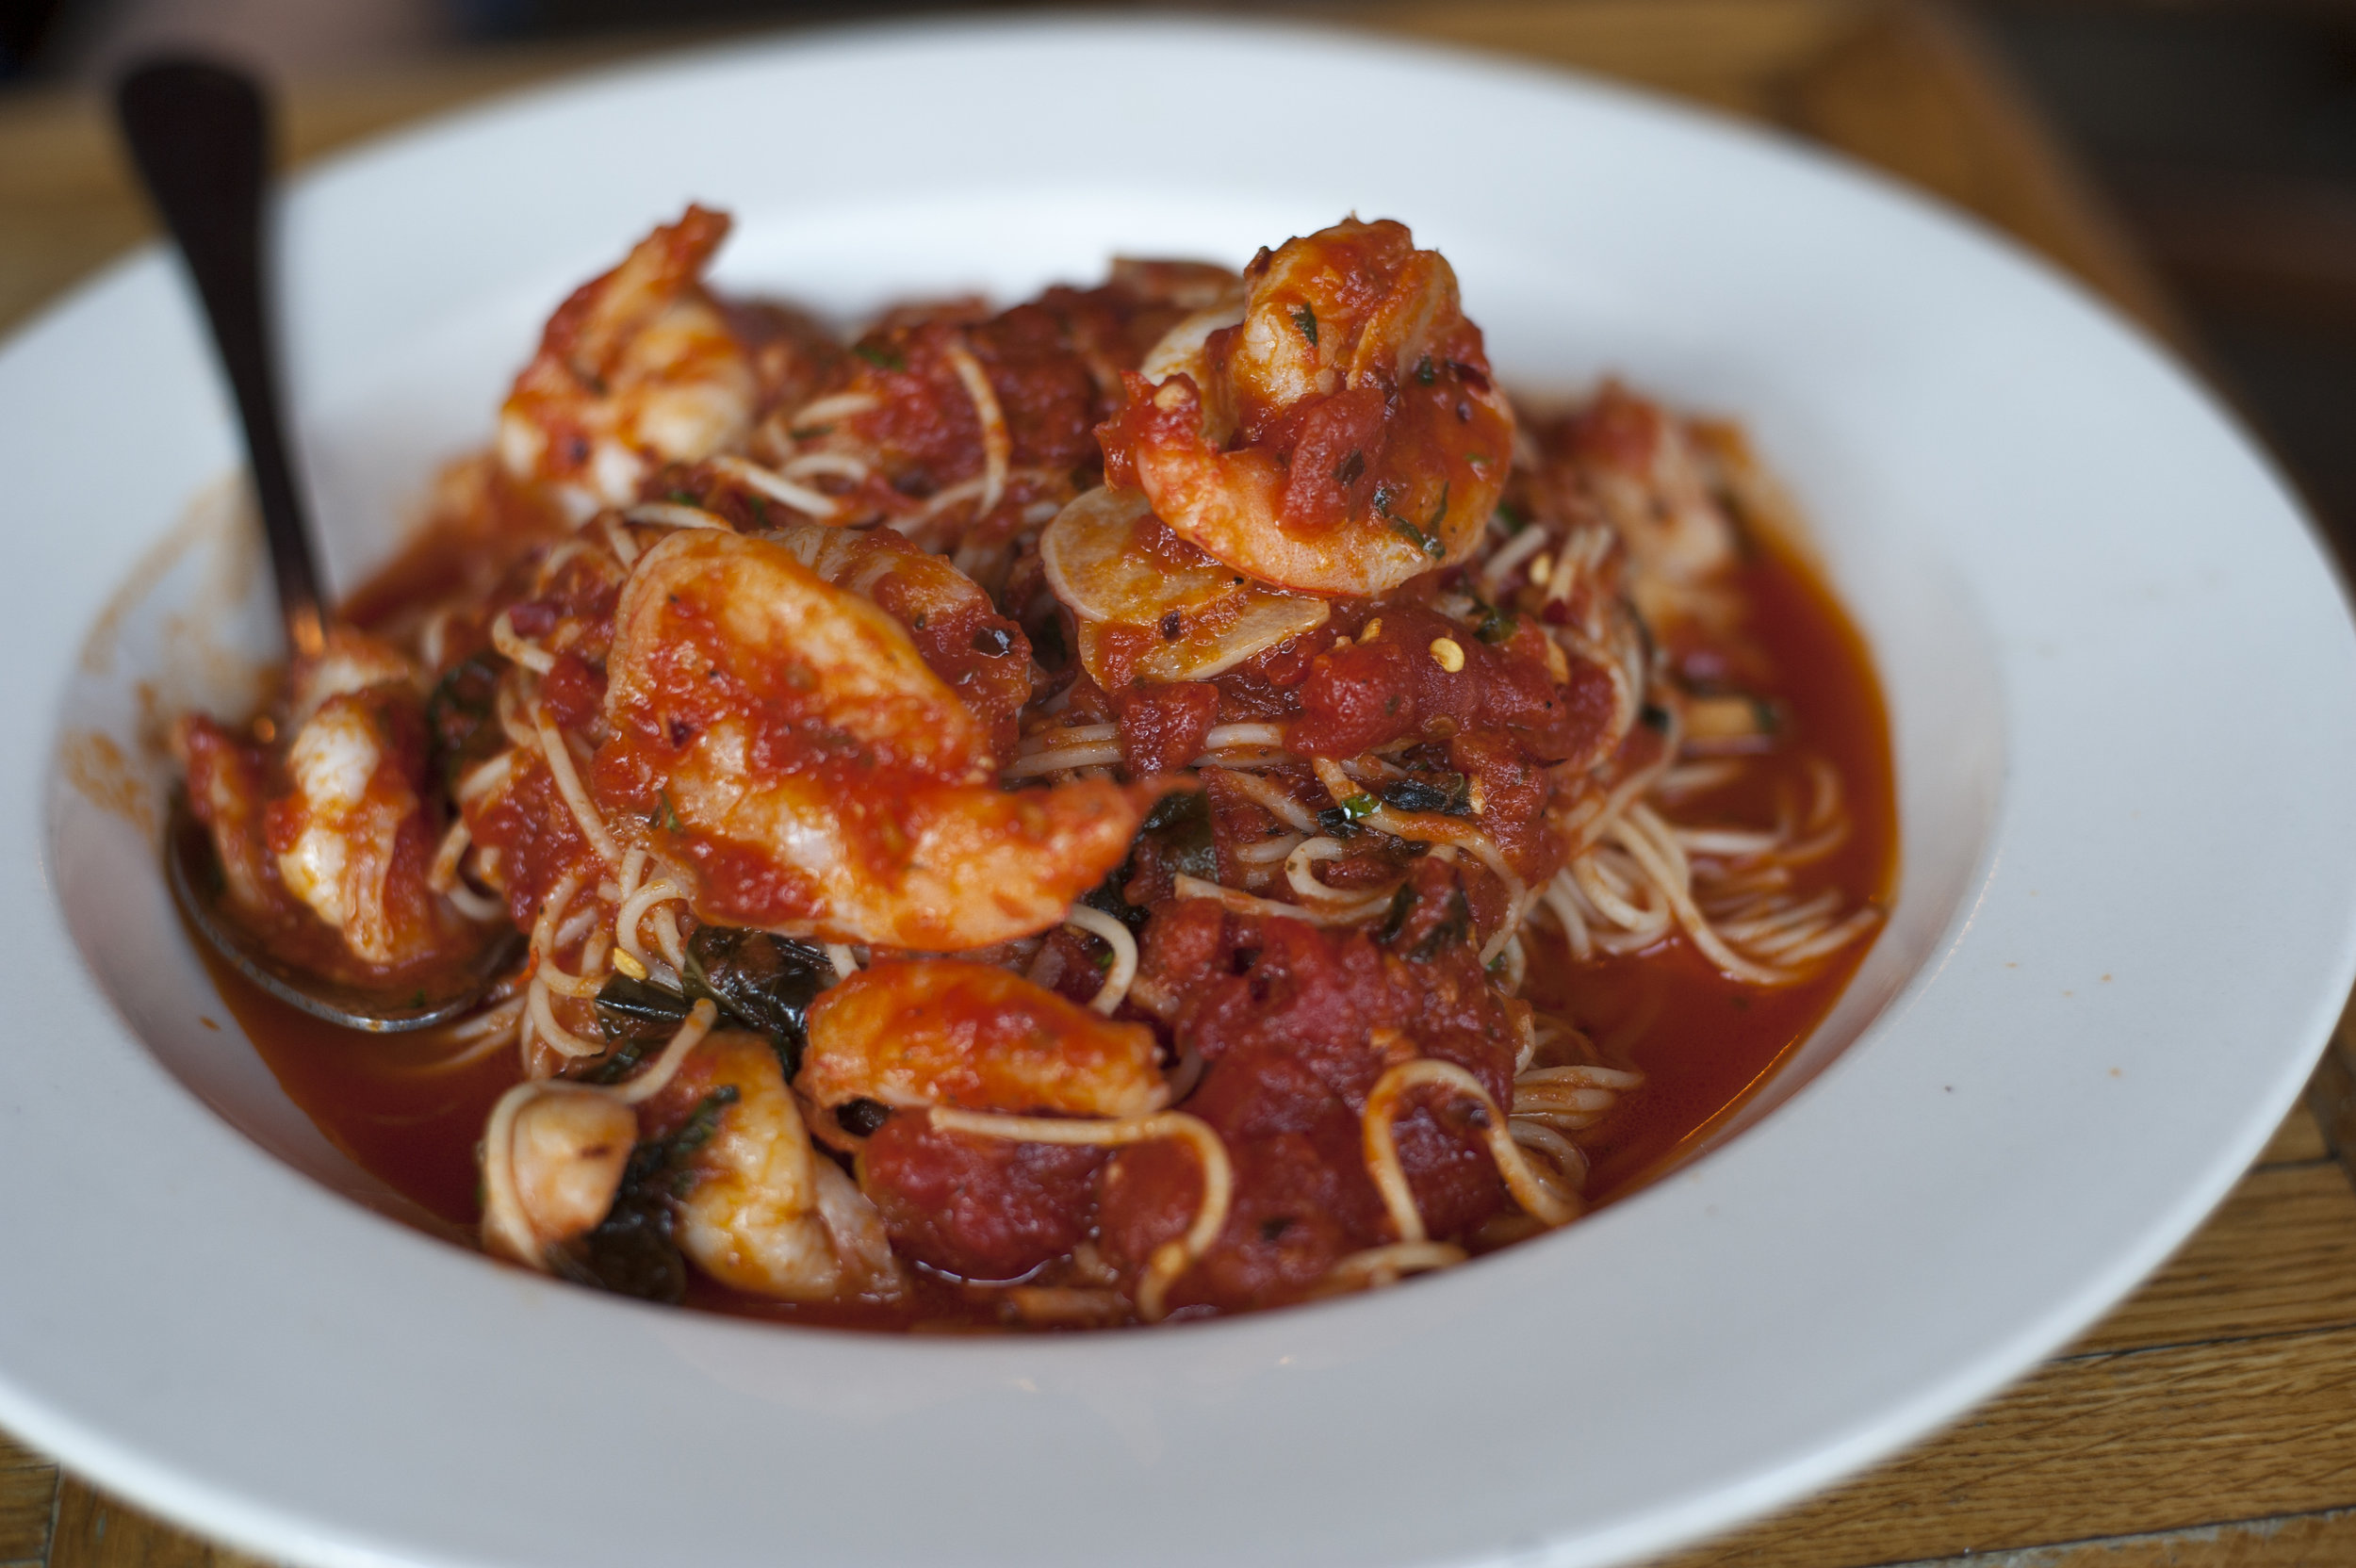 The Shrimp Fra Diavolo features a silky smooth angel hair pasta with perfectly cooked shrimp for a pasta entree to remember, steeped in a generous helping of slightly spicy marinara sauce.